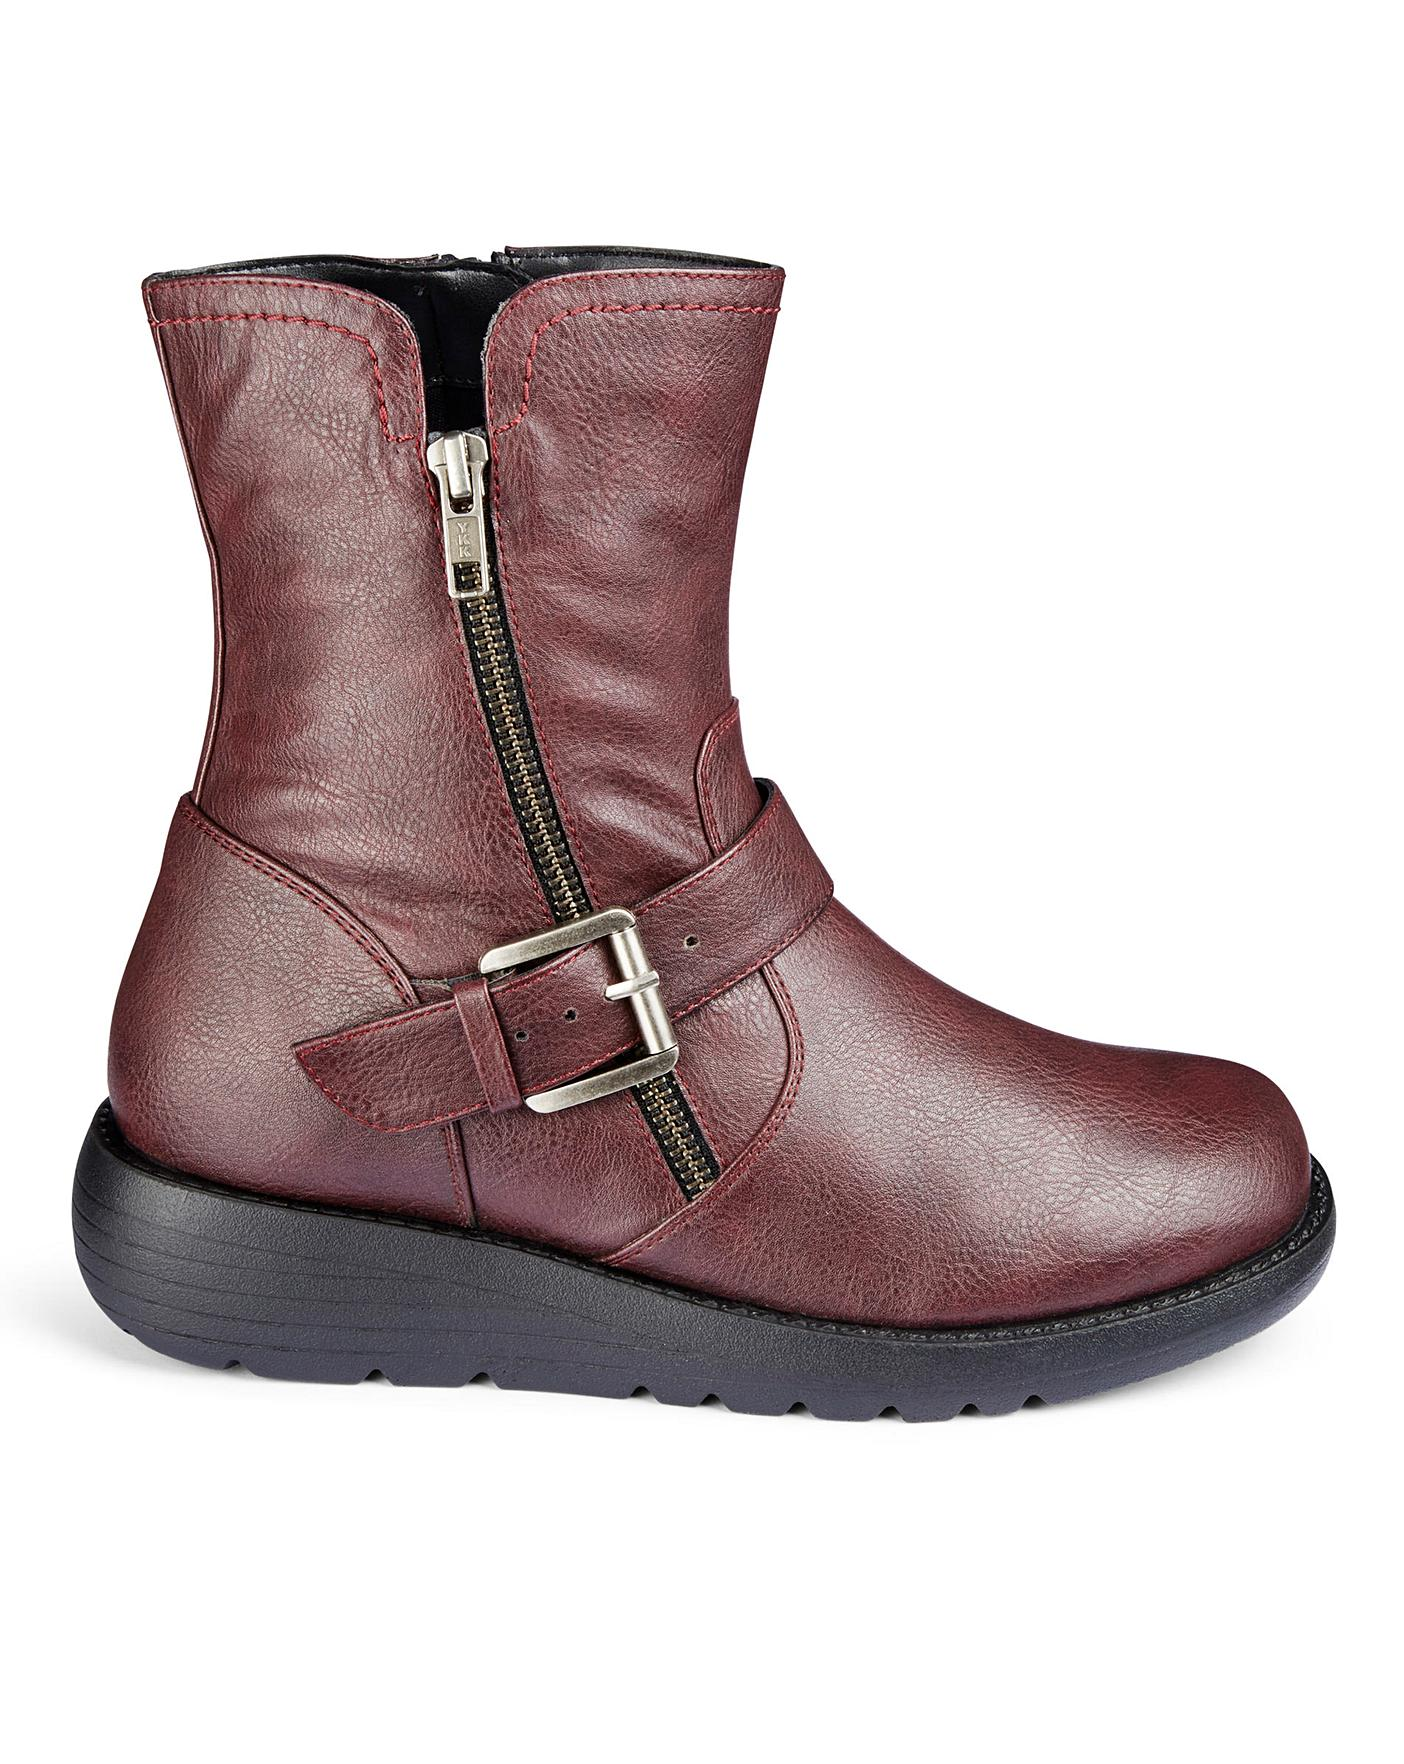 Zip Detail Ankle Boots EEE Fit   House